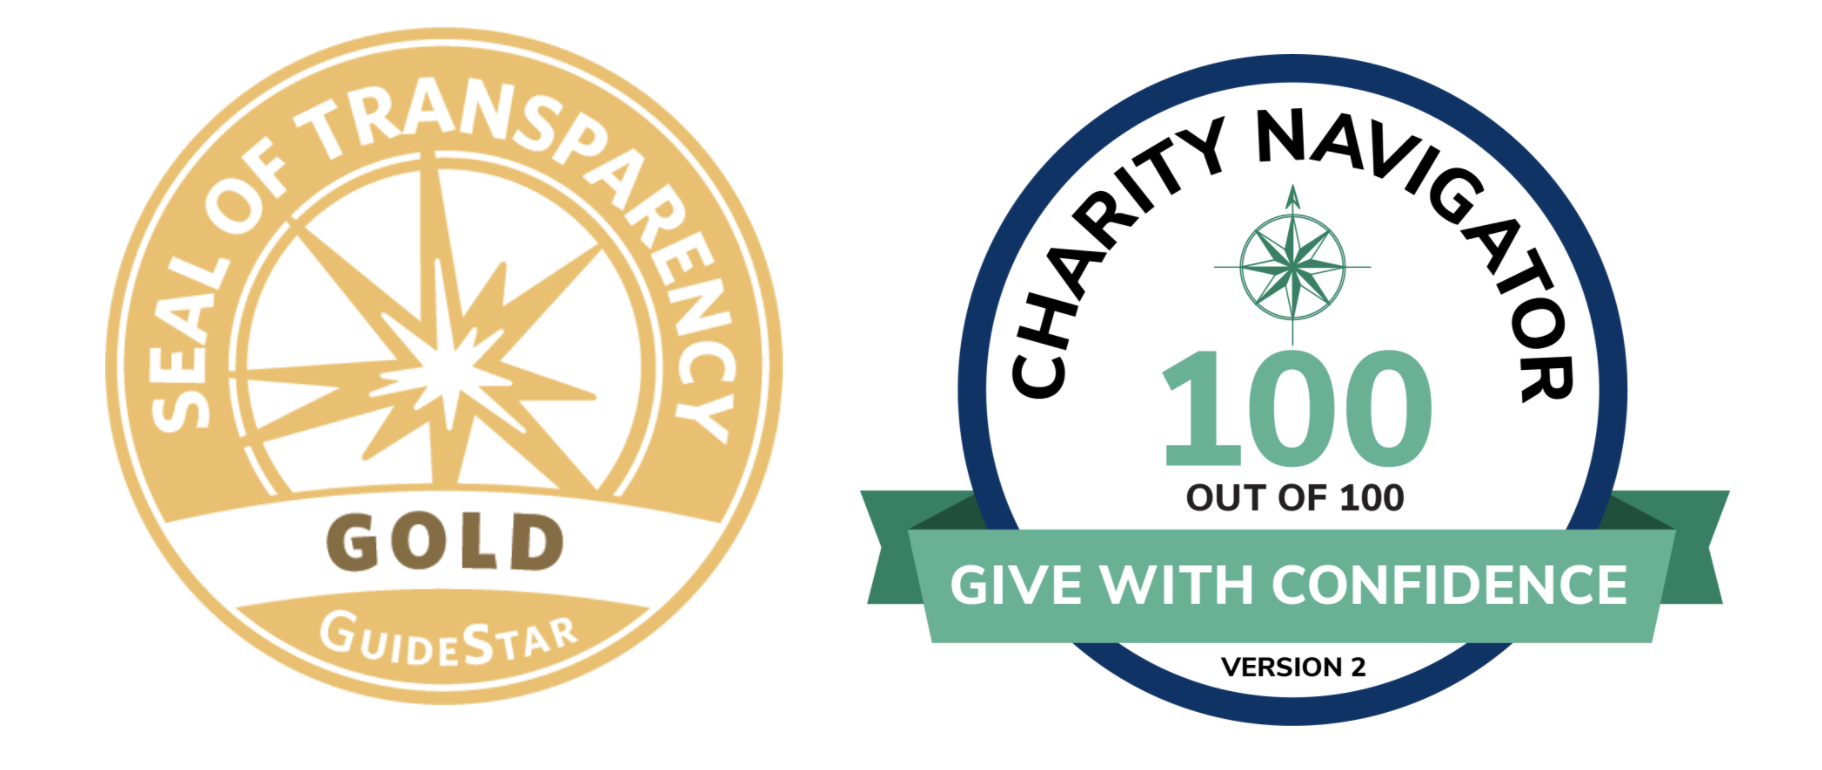 GuideStar Gold Seal of Transparency logo and Charity Navigator Score (100 of 100) logo